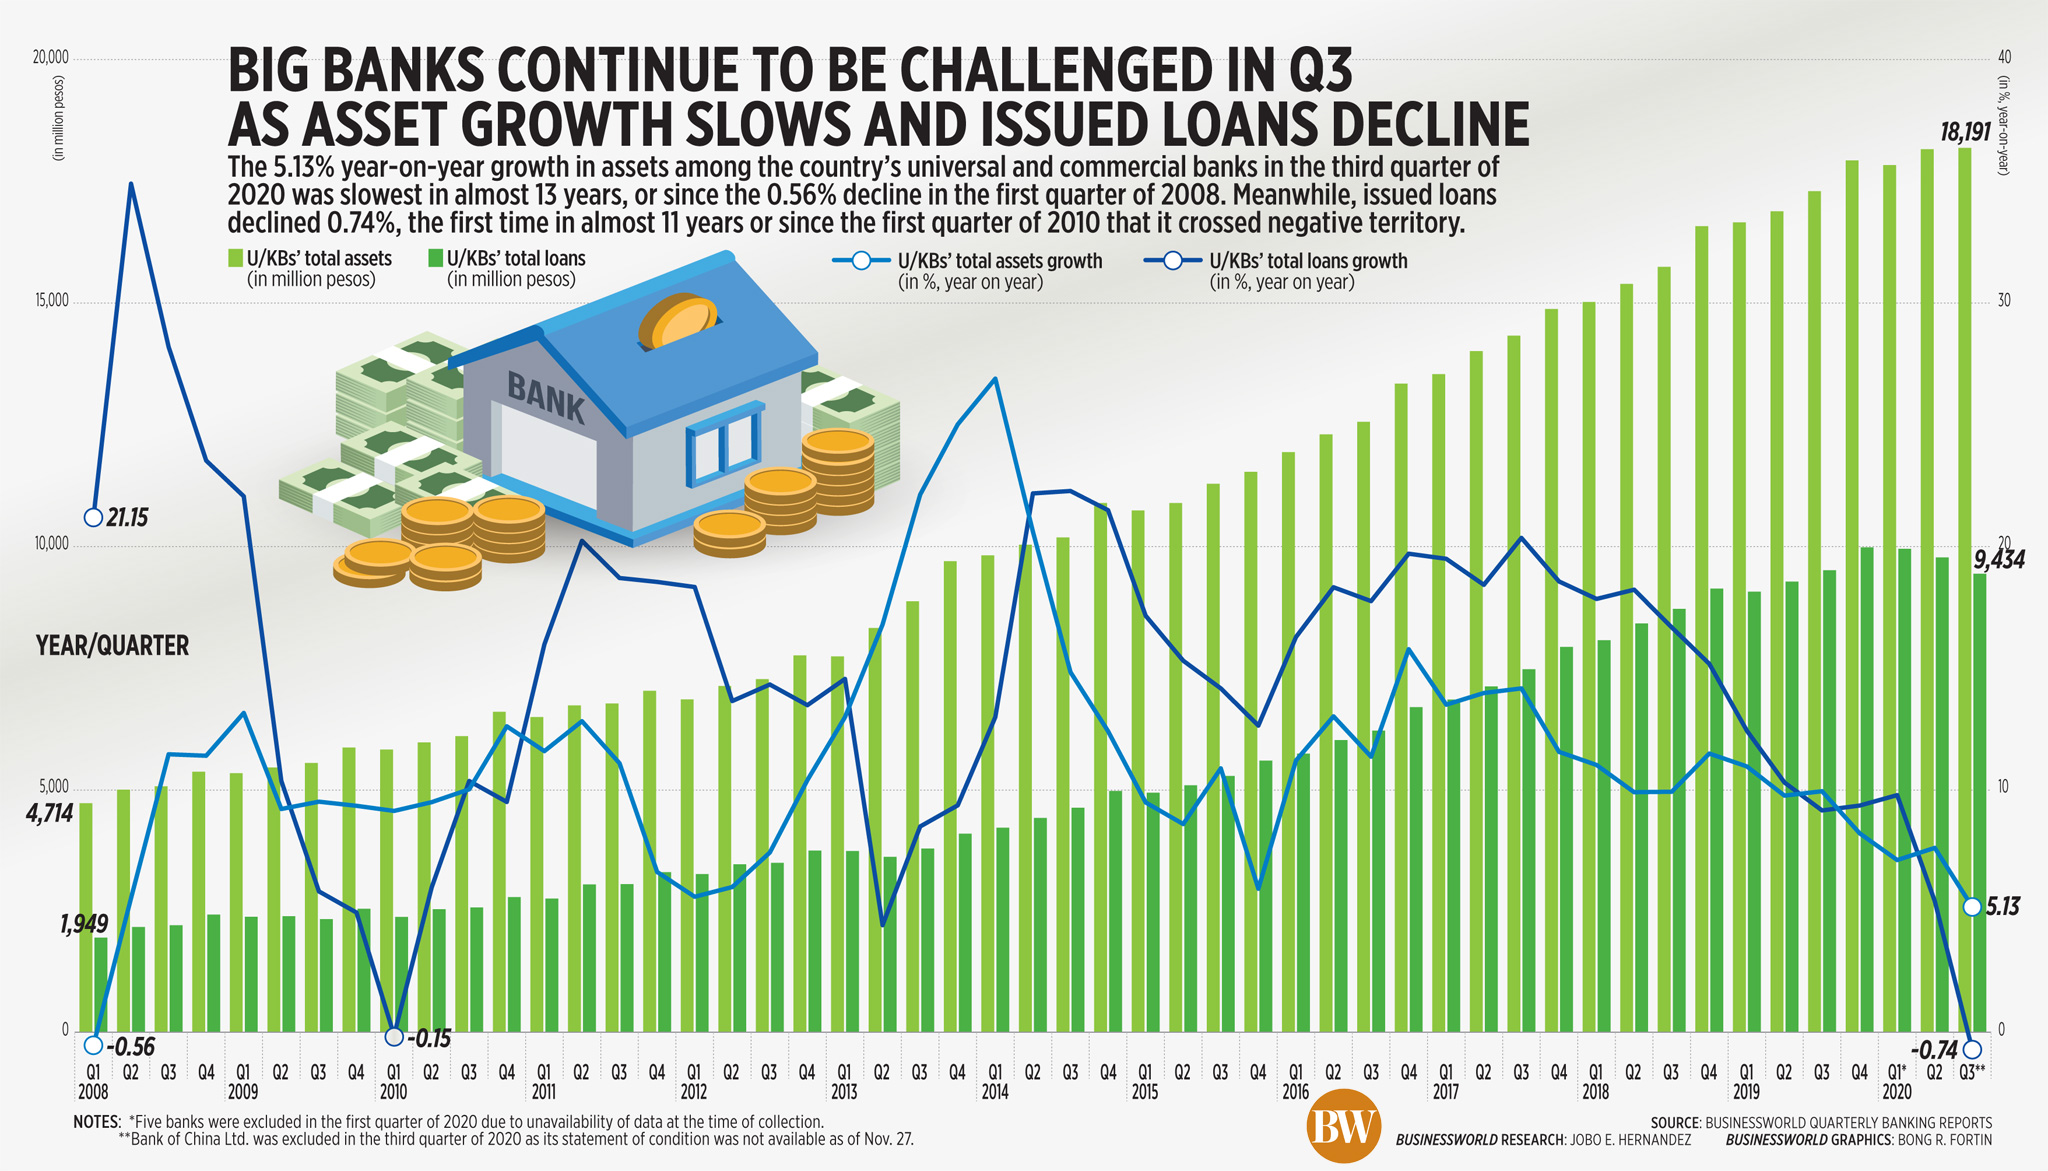 50712977558 8817940e44 o - Big banks continue to be challenged in Q3 as asset growth slows and issued loans decline